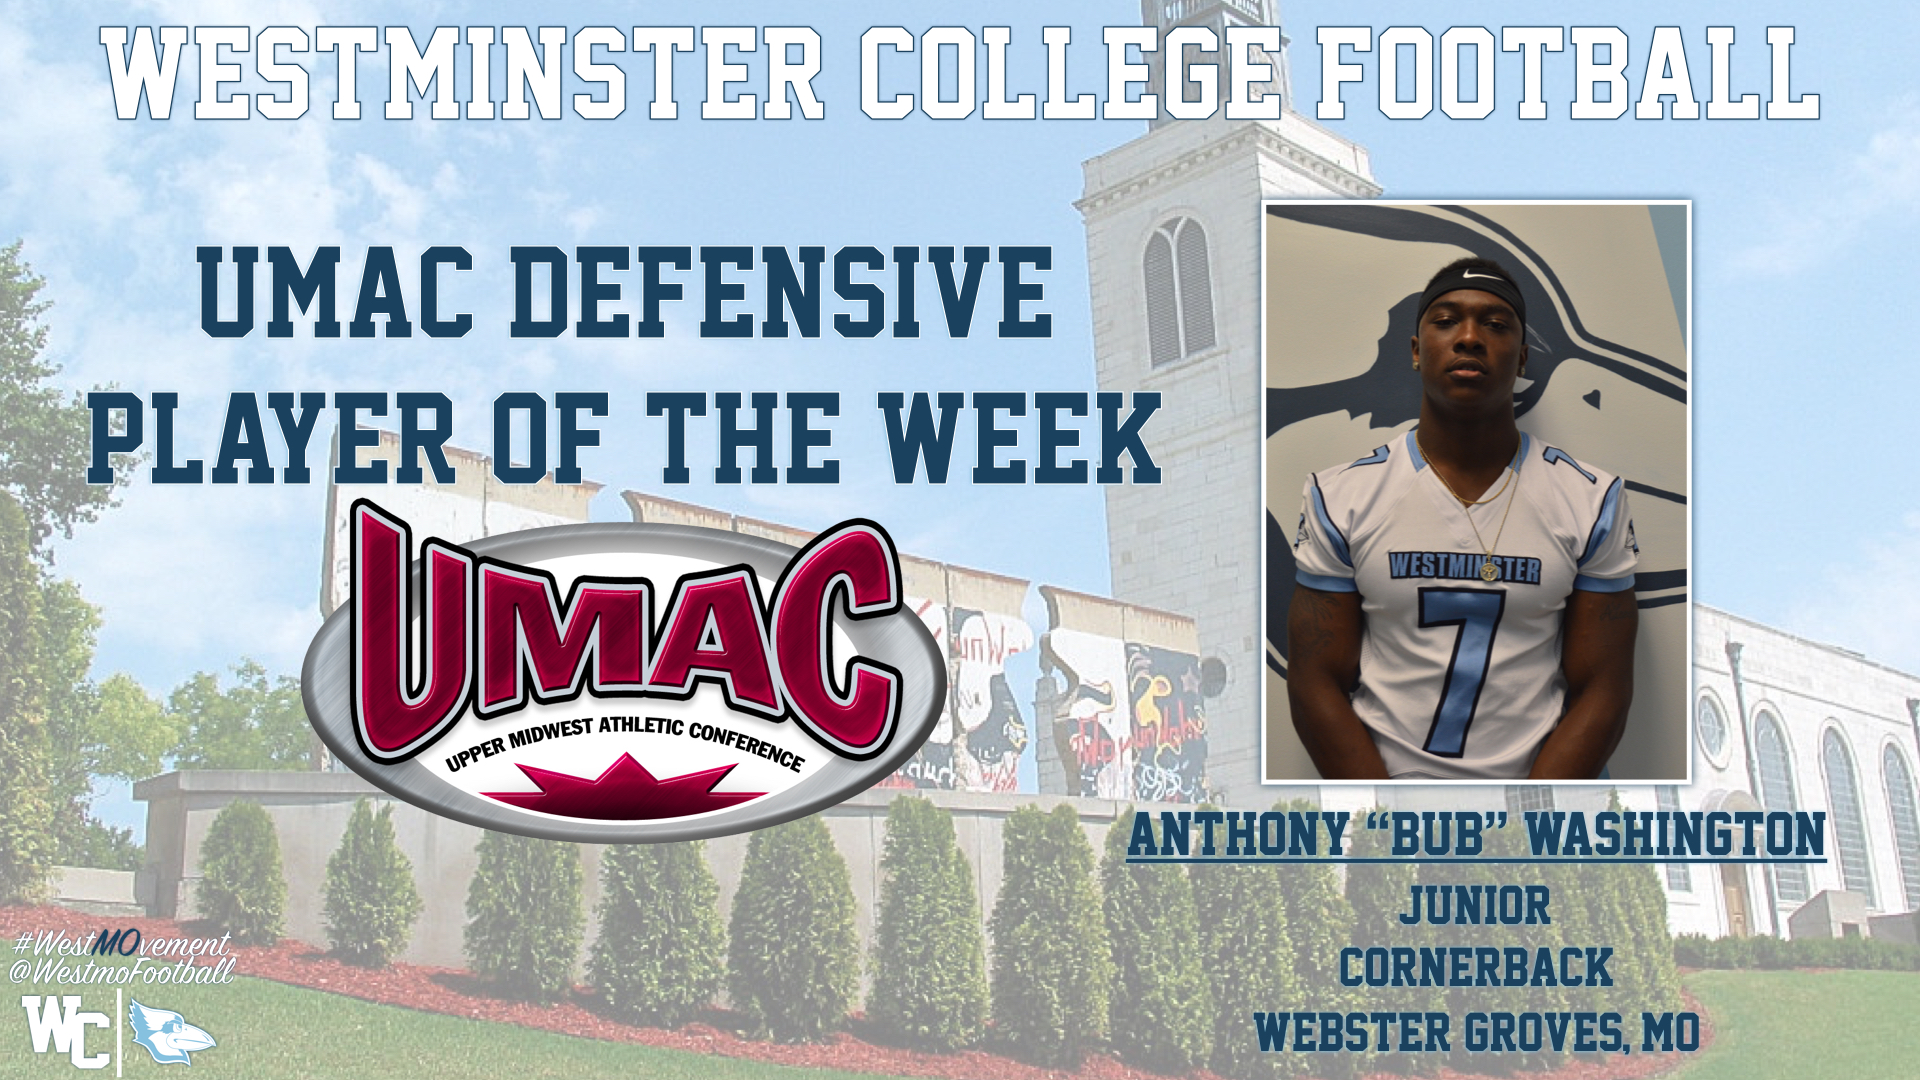 Washington Named UMAC Defensive Player of the Week